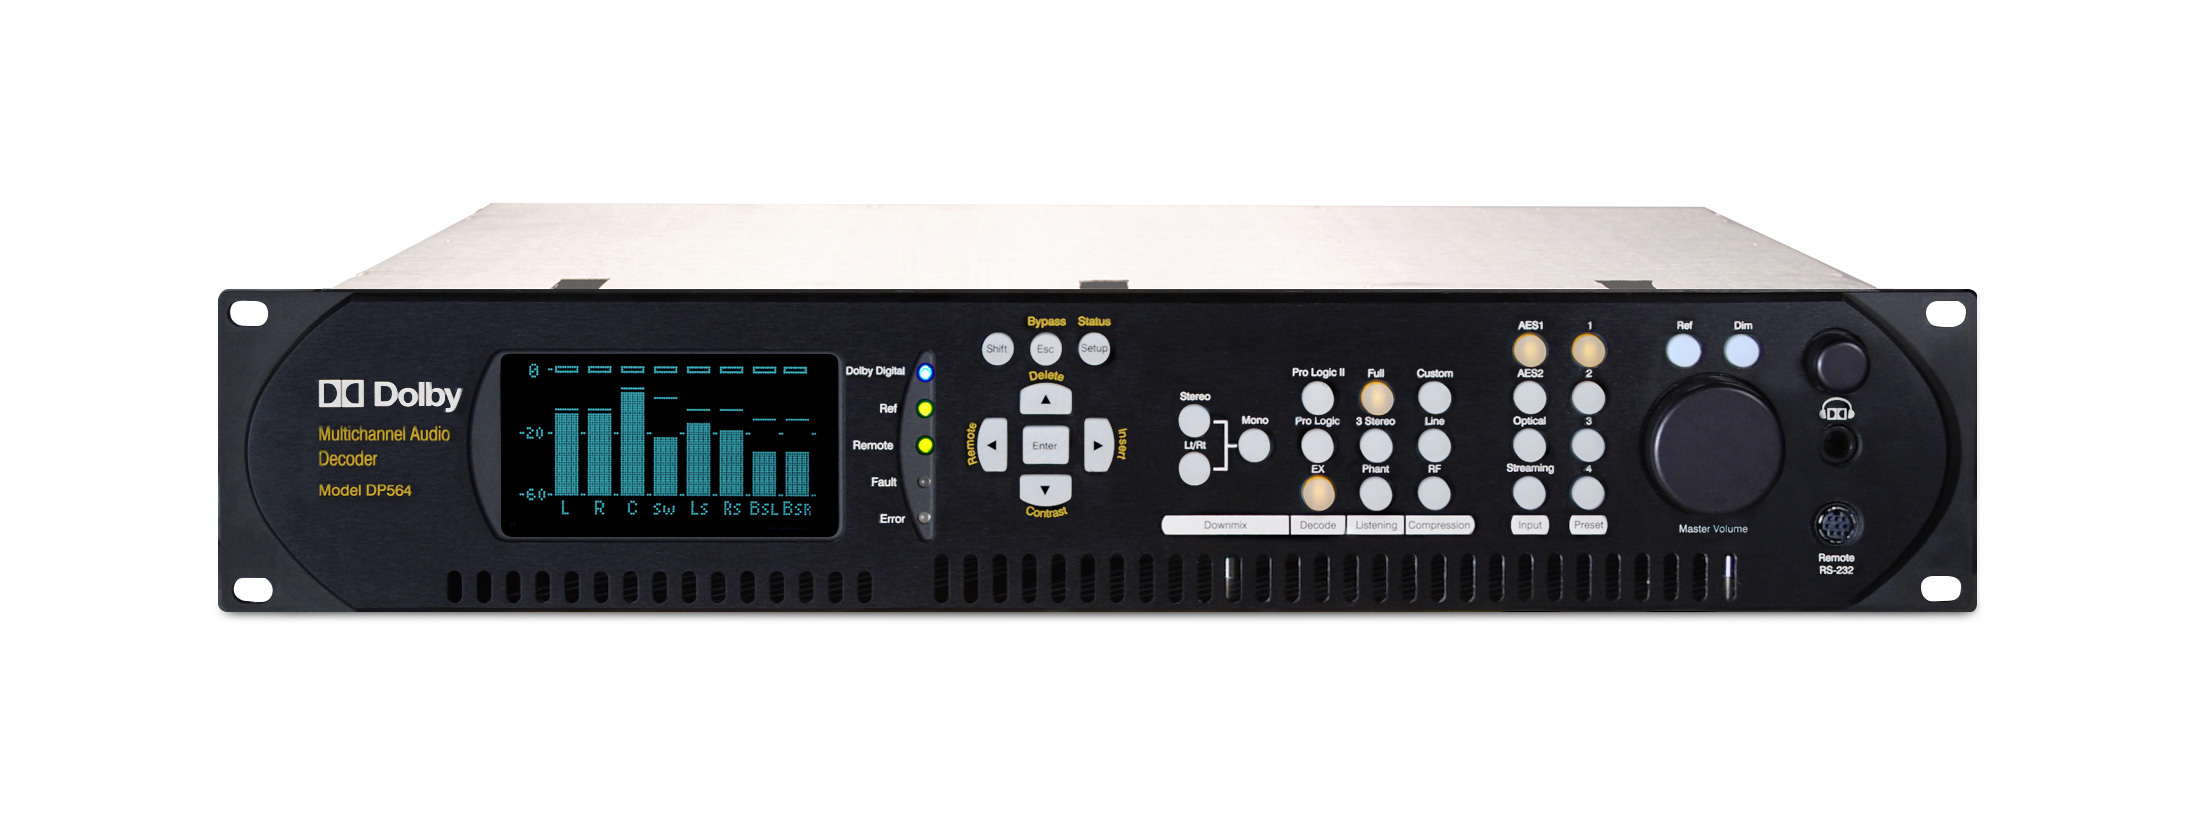 multichannel-audio-decoder-DP564-product-preview-front